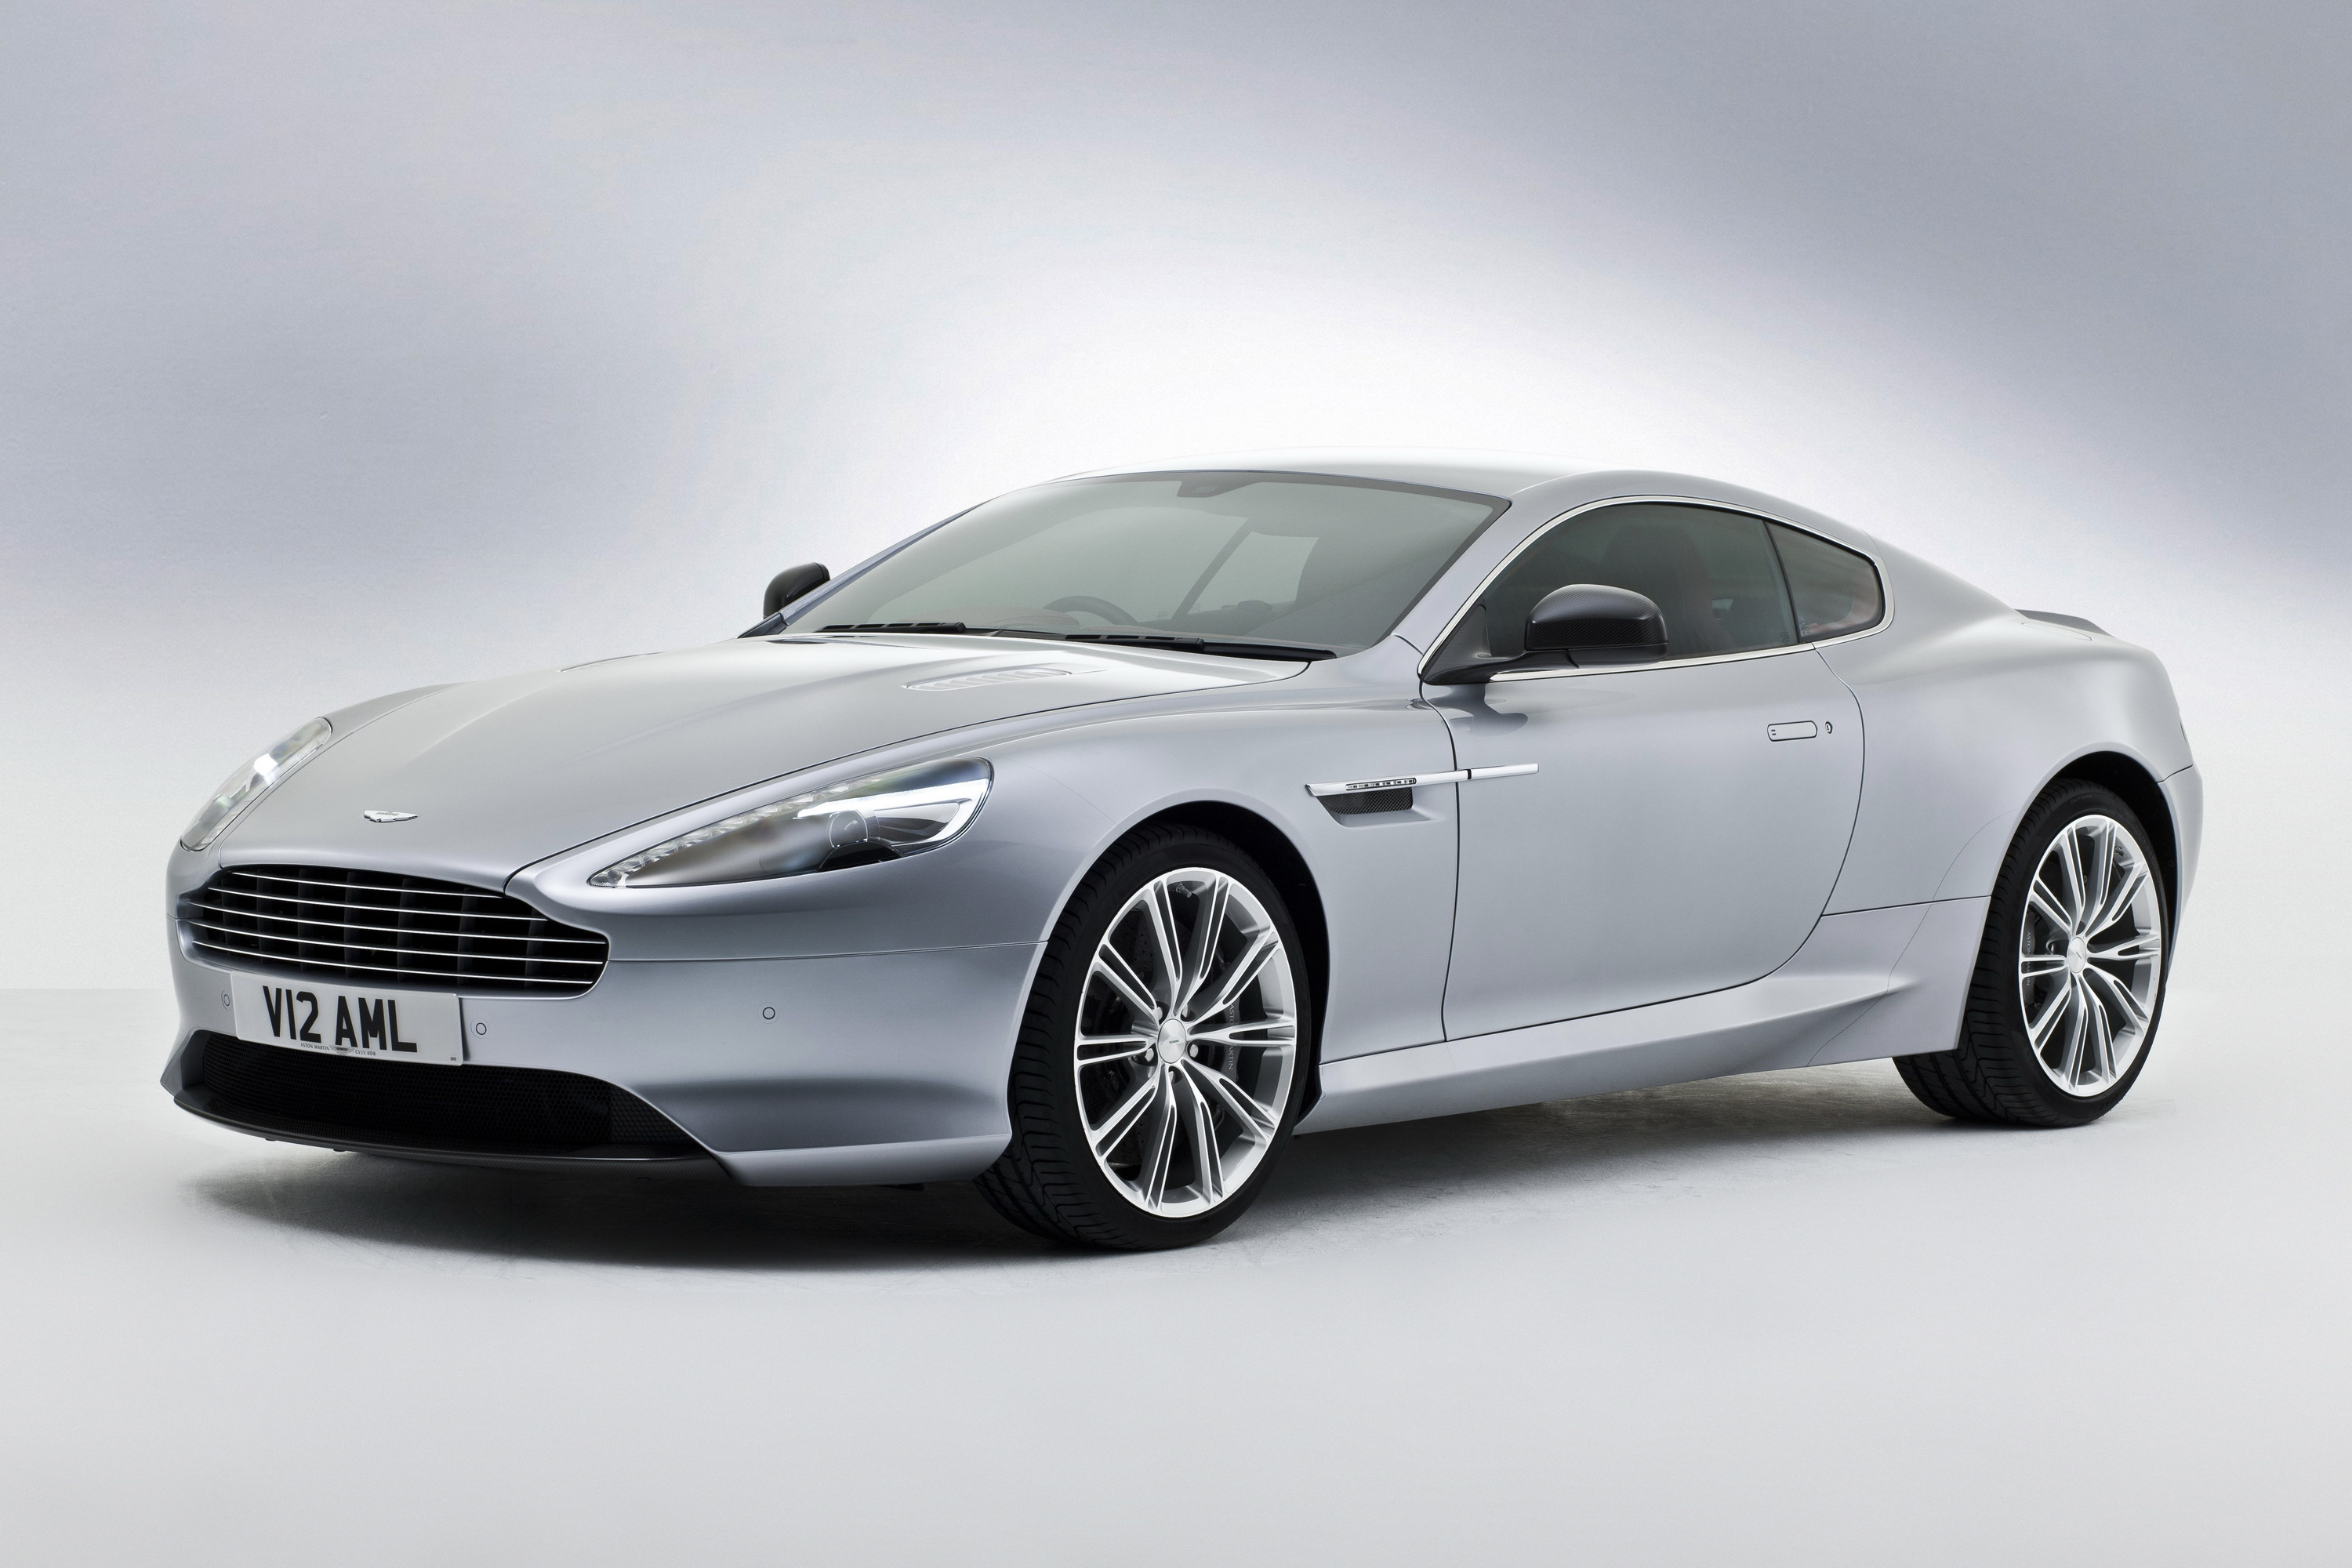 Aston Martin Db9 Latest News Reviews Specifications Prices Photos And Videos Top Speed